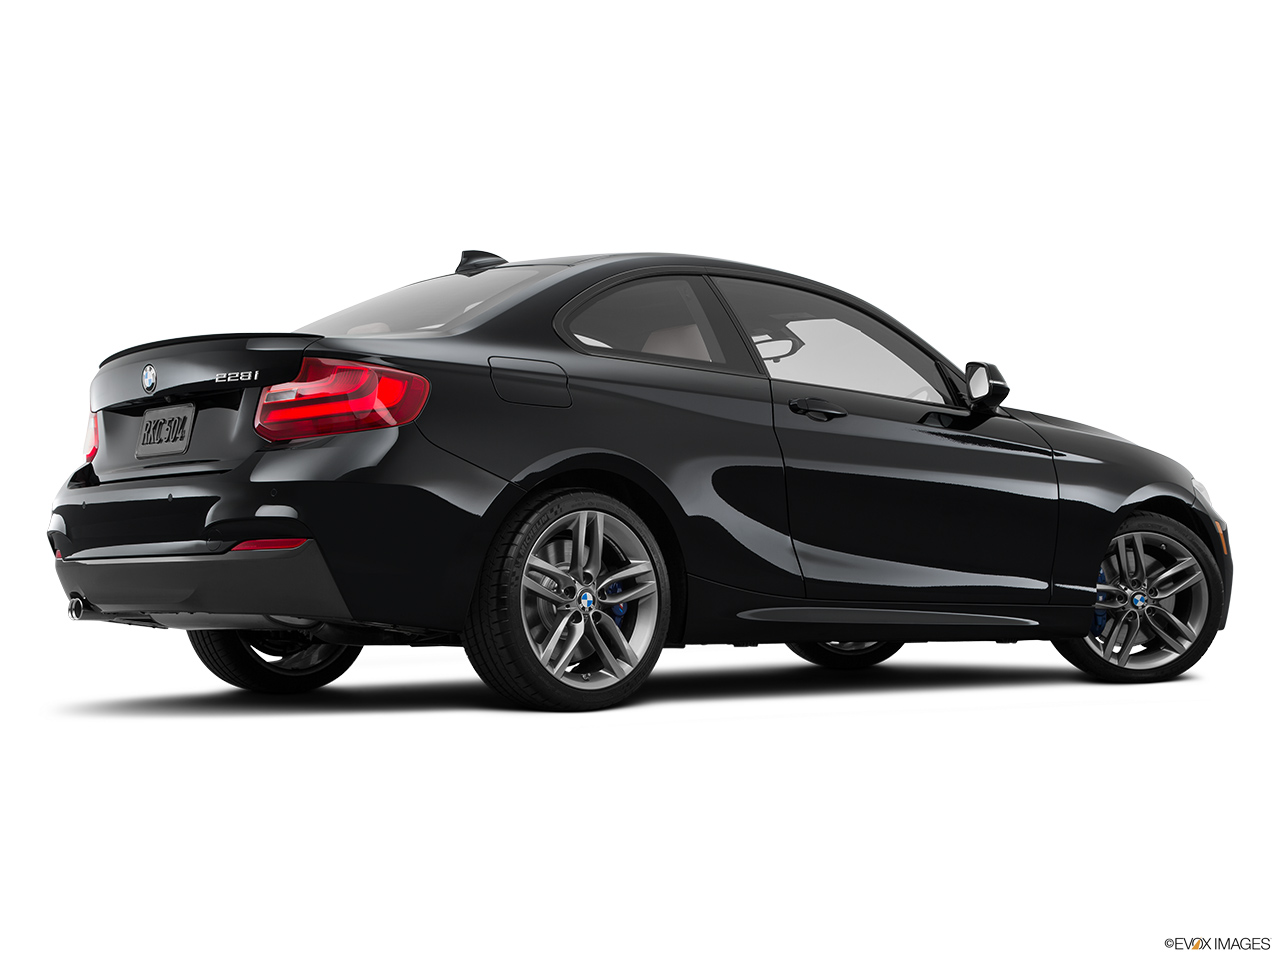 2015 Bmw 2 Series Coupe 228i Xdrive Awd Low Wide Rear 5 8